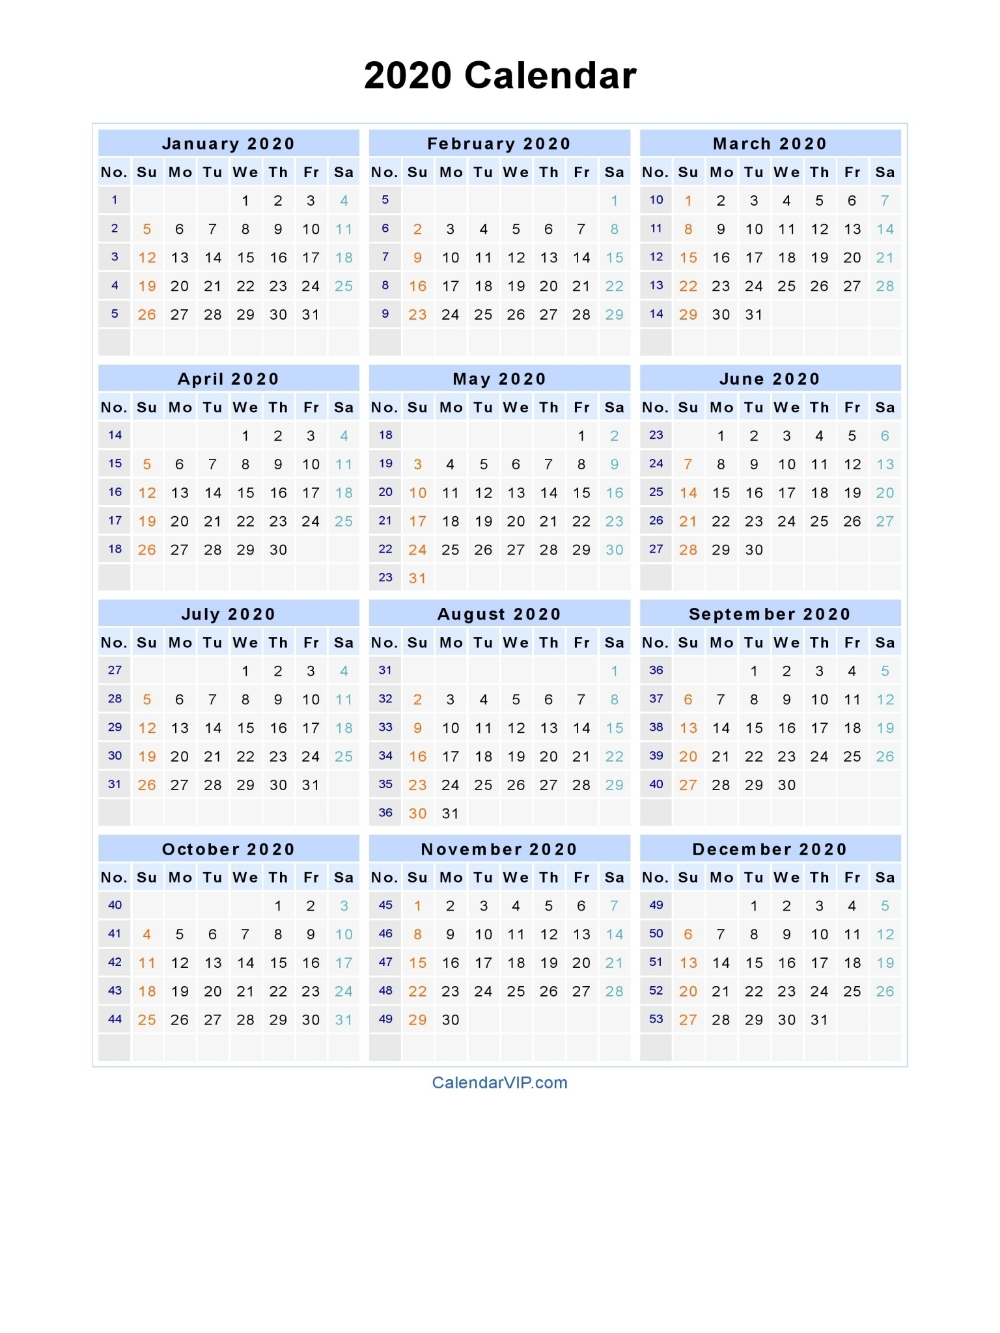 2020 Calendar - Blank Printable Calendar Template In Pdf throughout 2020 Calendar Weeks Numbered Excel